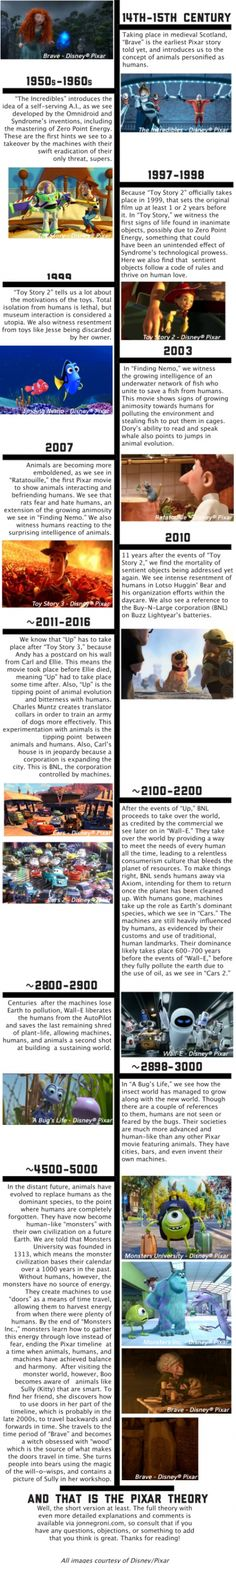 This Pixar theory timeline is just....genius. I serioudly want to watch all of them in order now.